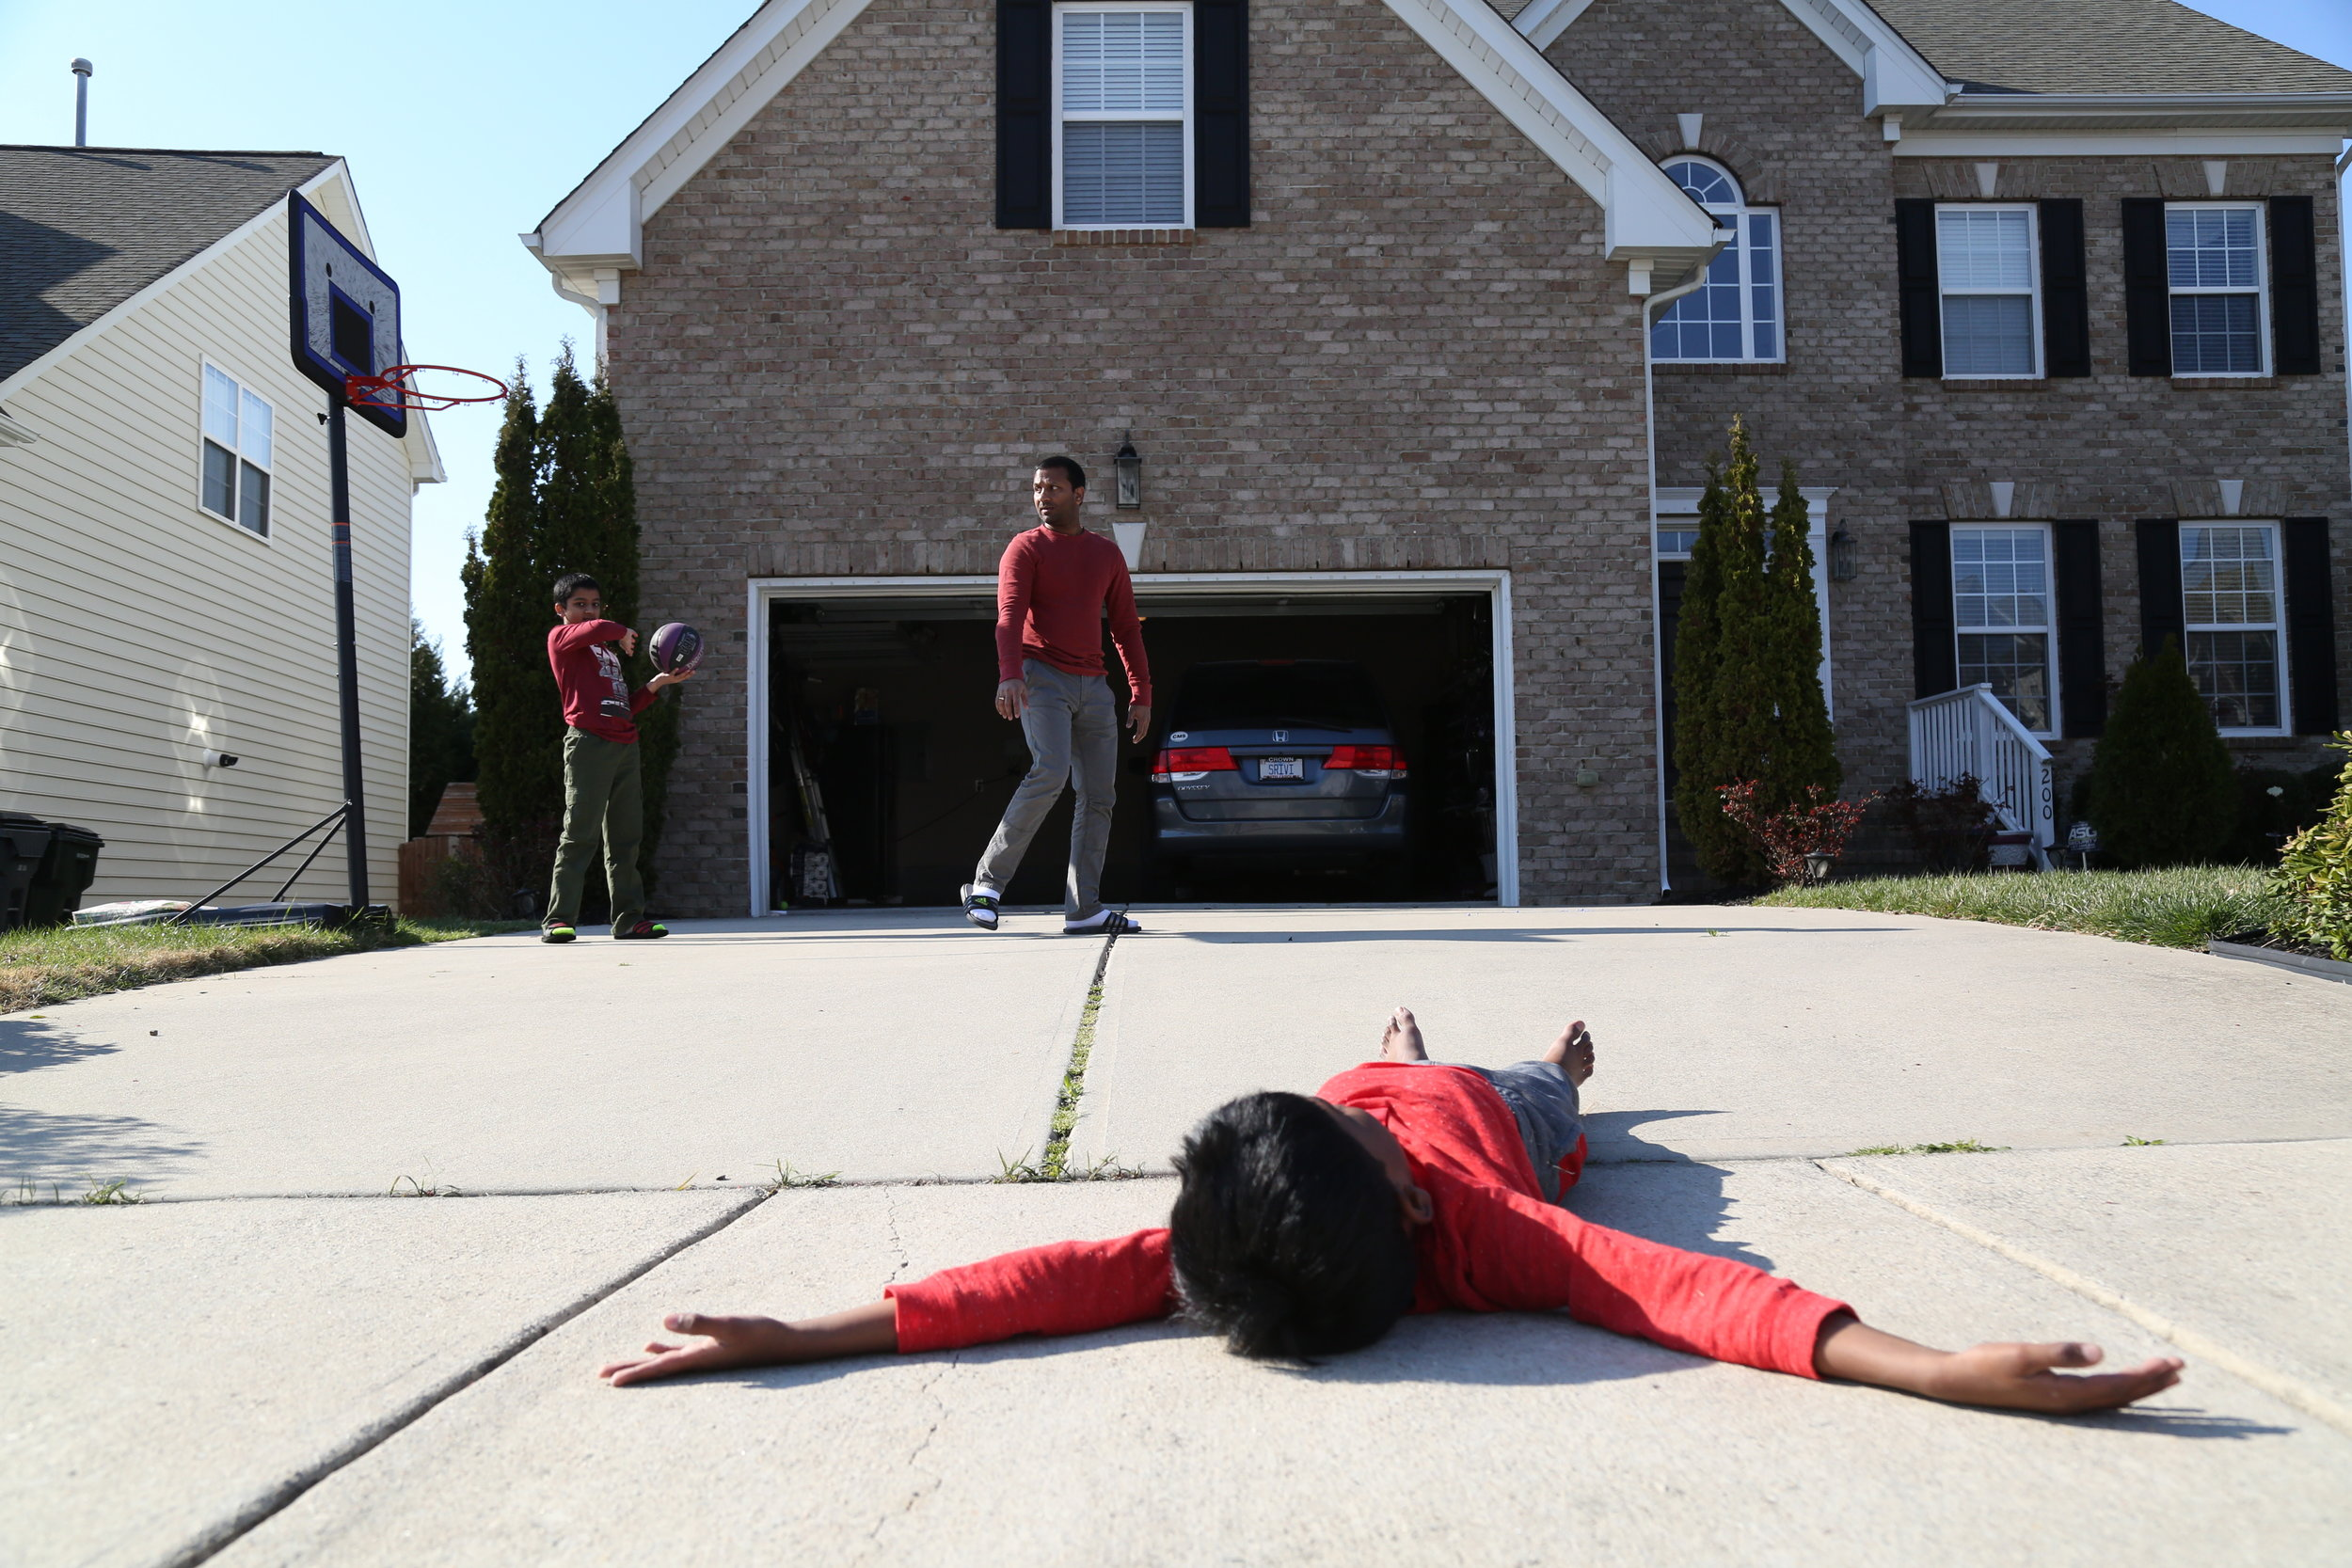 Rajesh Reddy, a native of Morrisville, plays with his two sons, Suresh Reddy (older) and Sirish Reddy (younger) in front of the garage on March.4,2017. The photo was shot as the zipcode assignment for MEJO480, photo stories class.